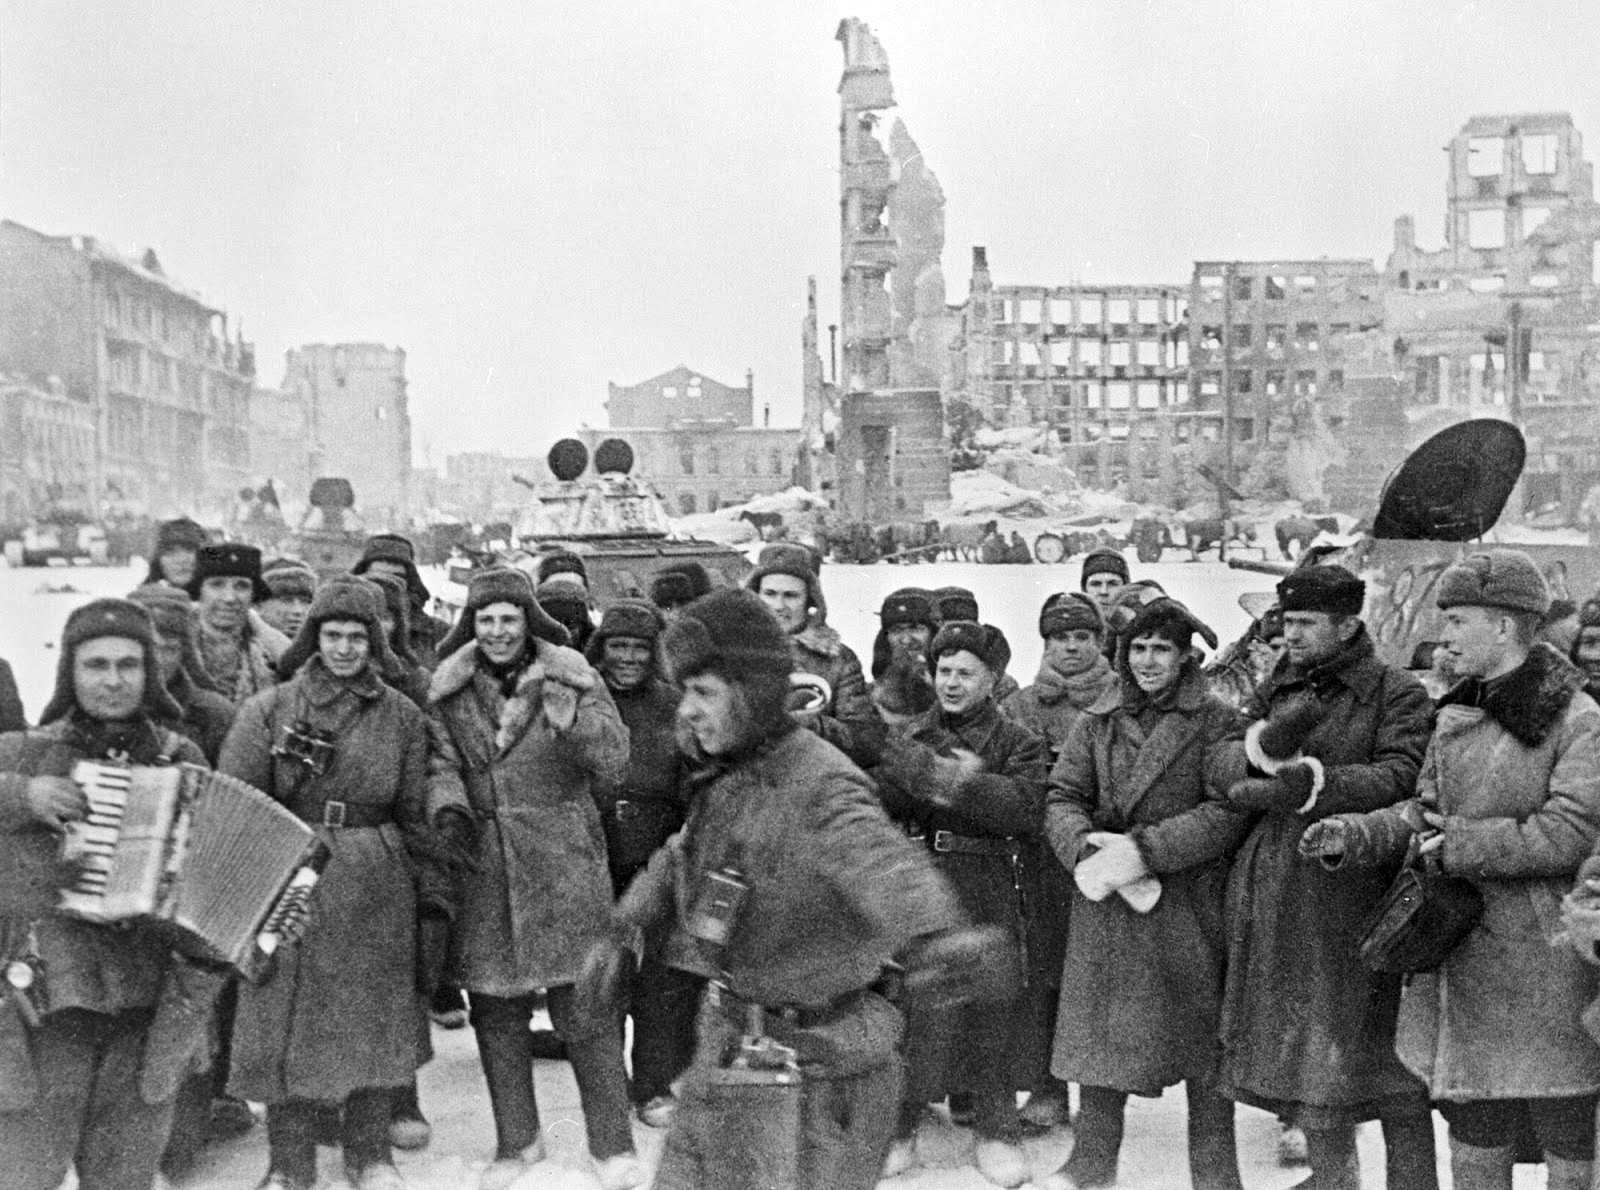 an introduction to the history of the german surrender at stalingrad --stalingrad appendix a: german and soviet orders of battle, 19 november 1942 i was aware of its place in history as the turning point in the war.